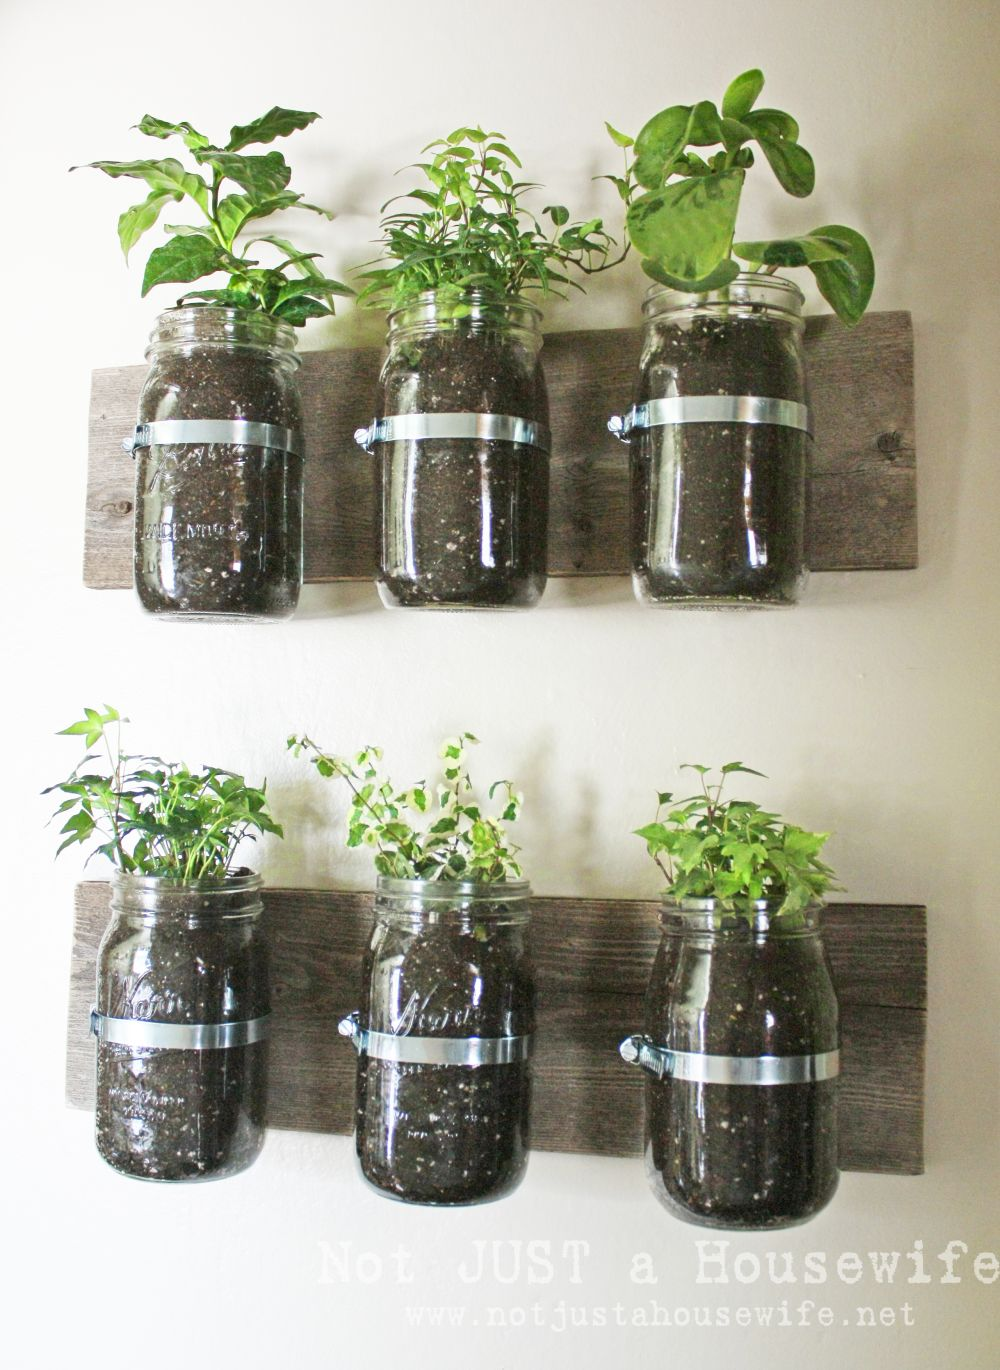 1567594061 226 15 stylish ways to make a hanging wall vase or planter - 15 Stylish Ways To Make A Hanging Wall Vase Or Planter